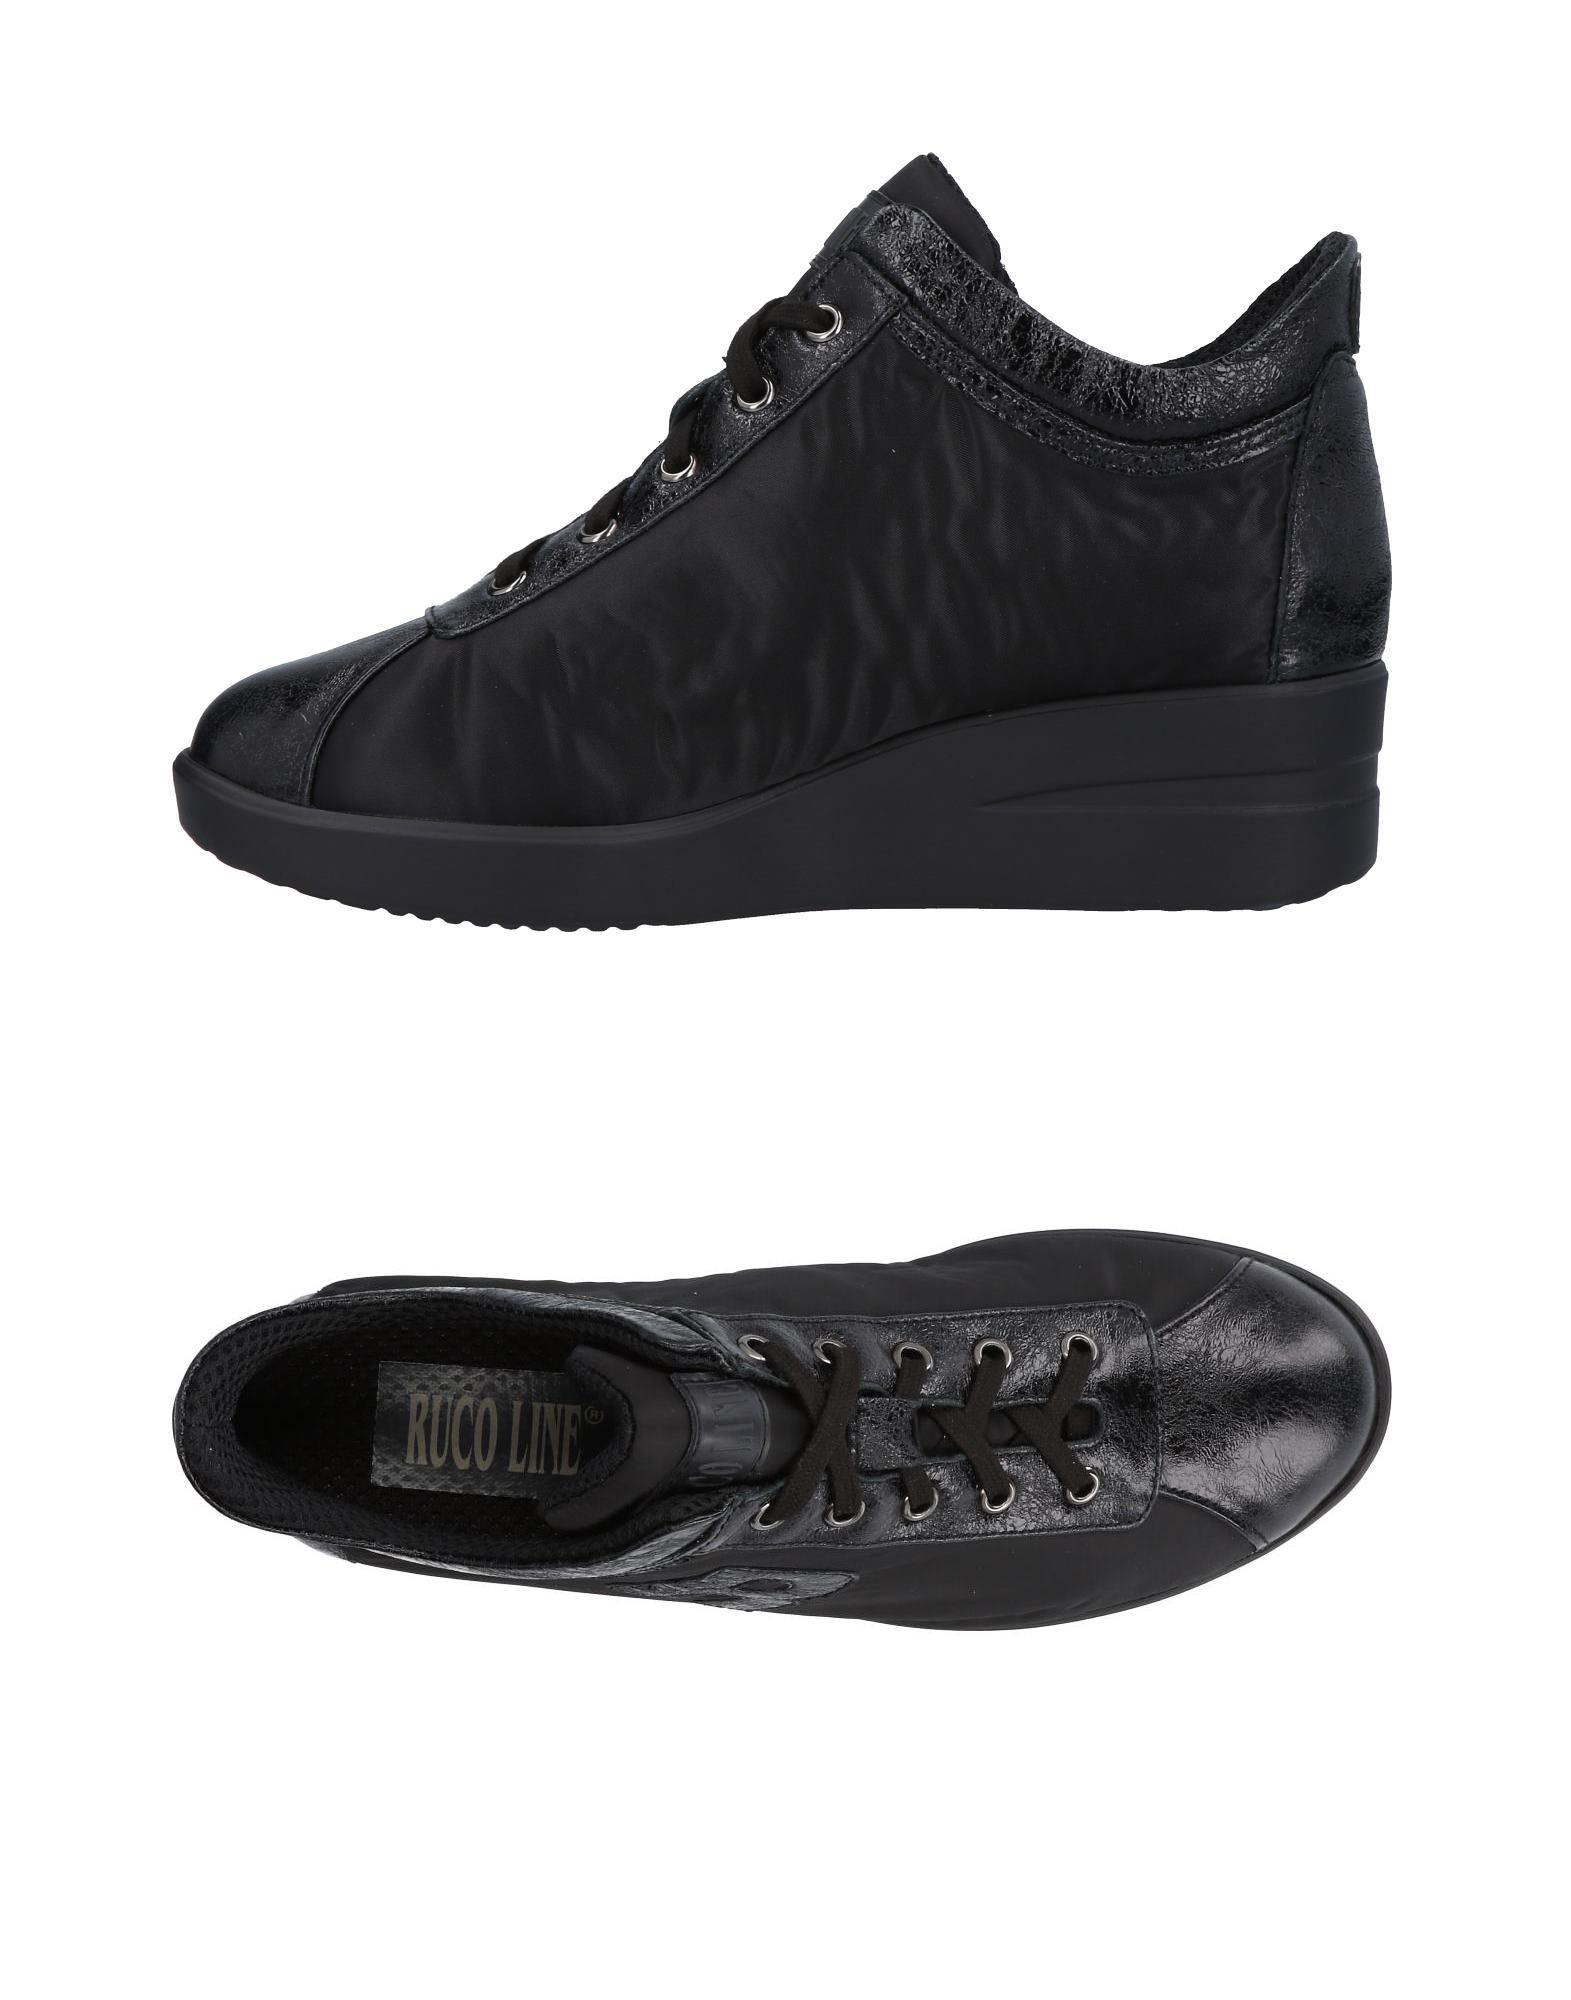 Sneakers Ruco Line Donna - 11469192KD